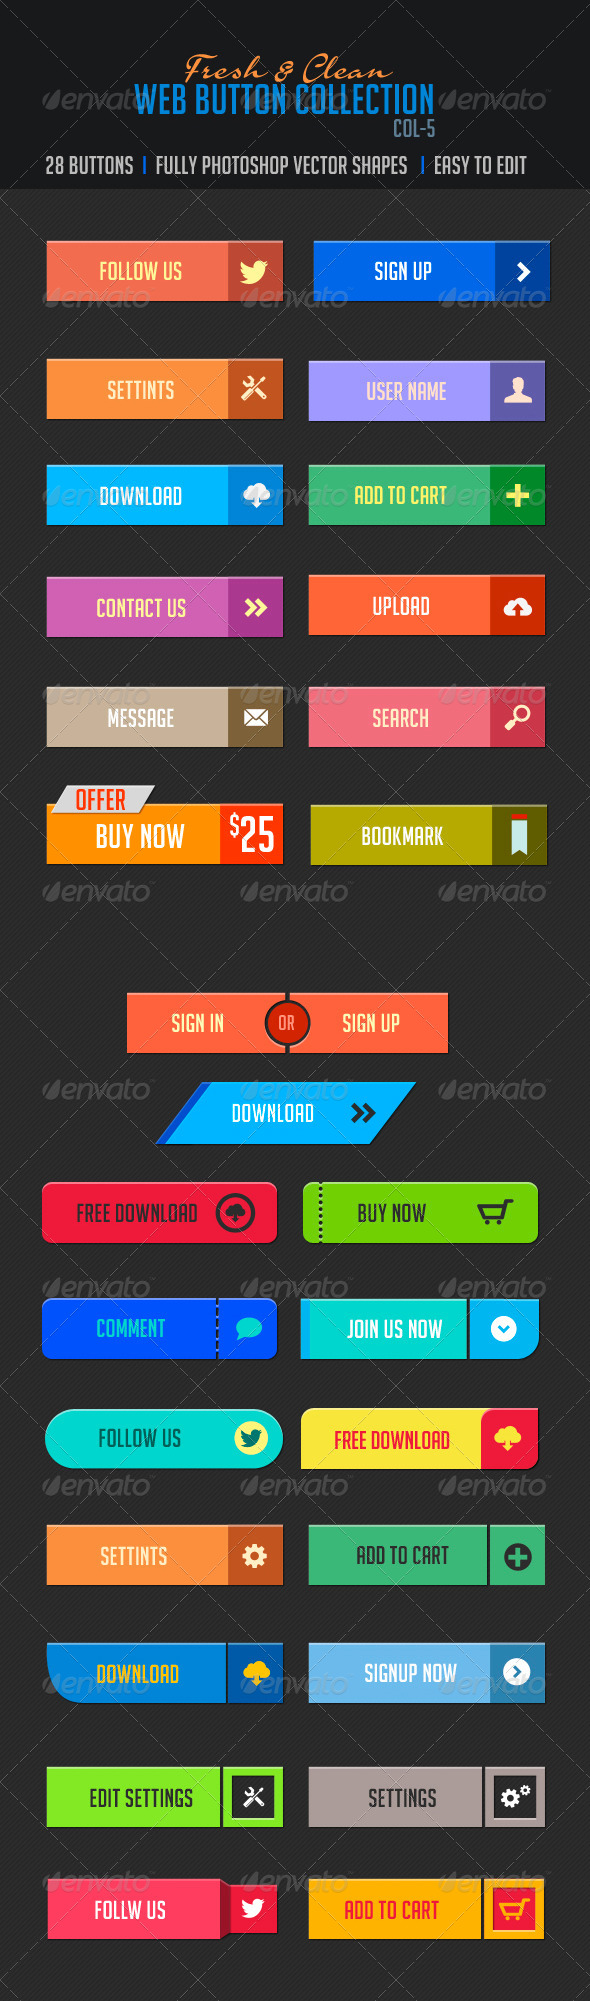 Web Buttons Col-5 Fresh & Clean - Buttons Web Elements